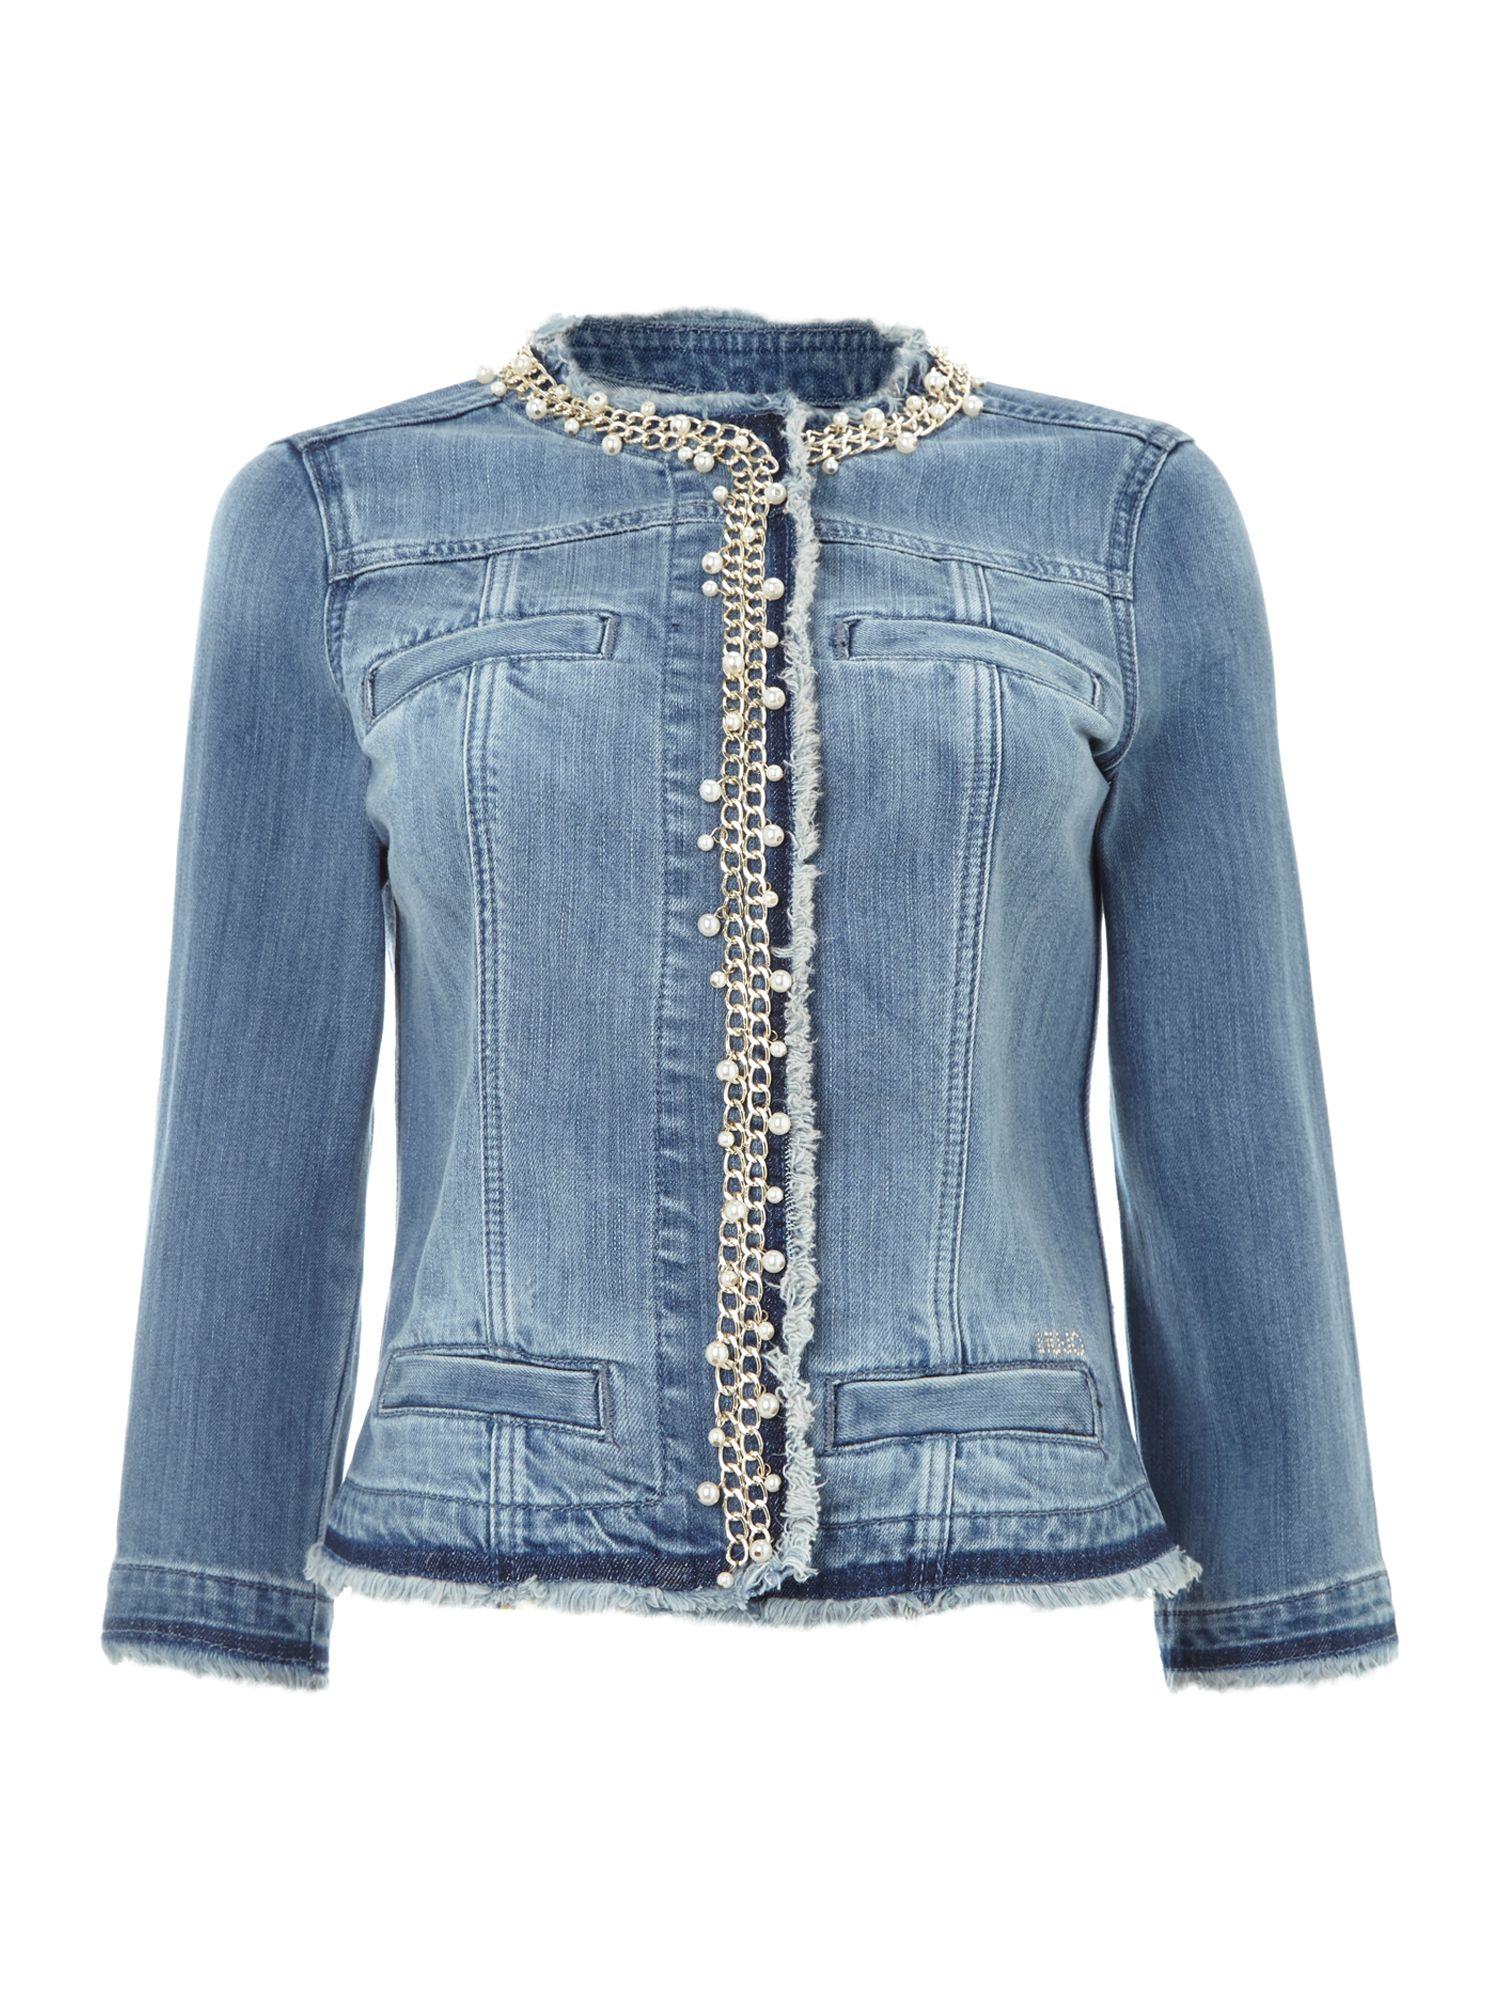 Pearl chain trim denim jacket